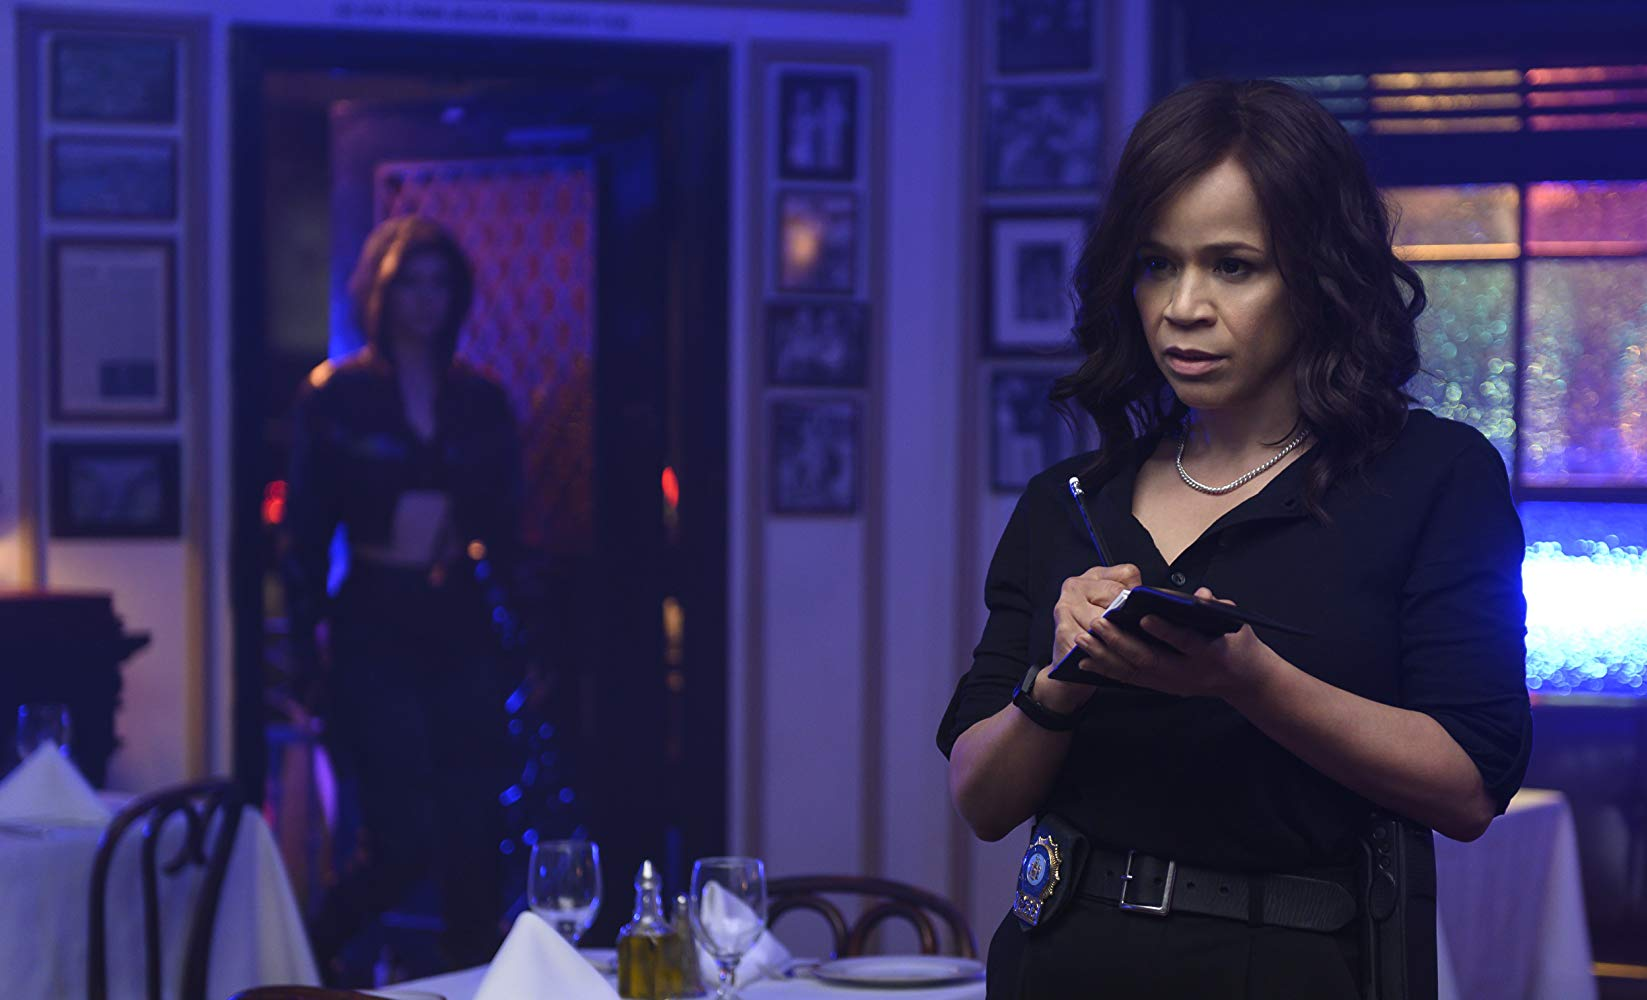 Birds of Prey Rosie Perez as Renee Montoya